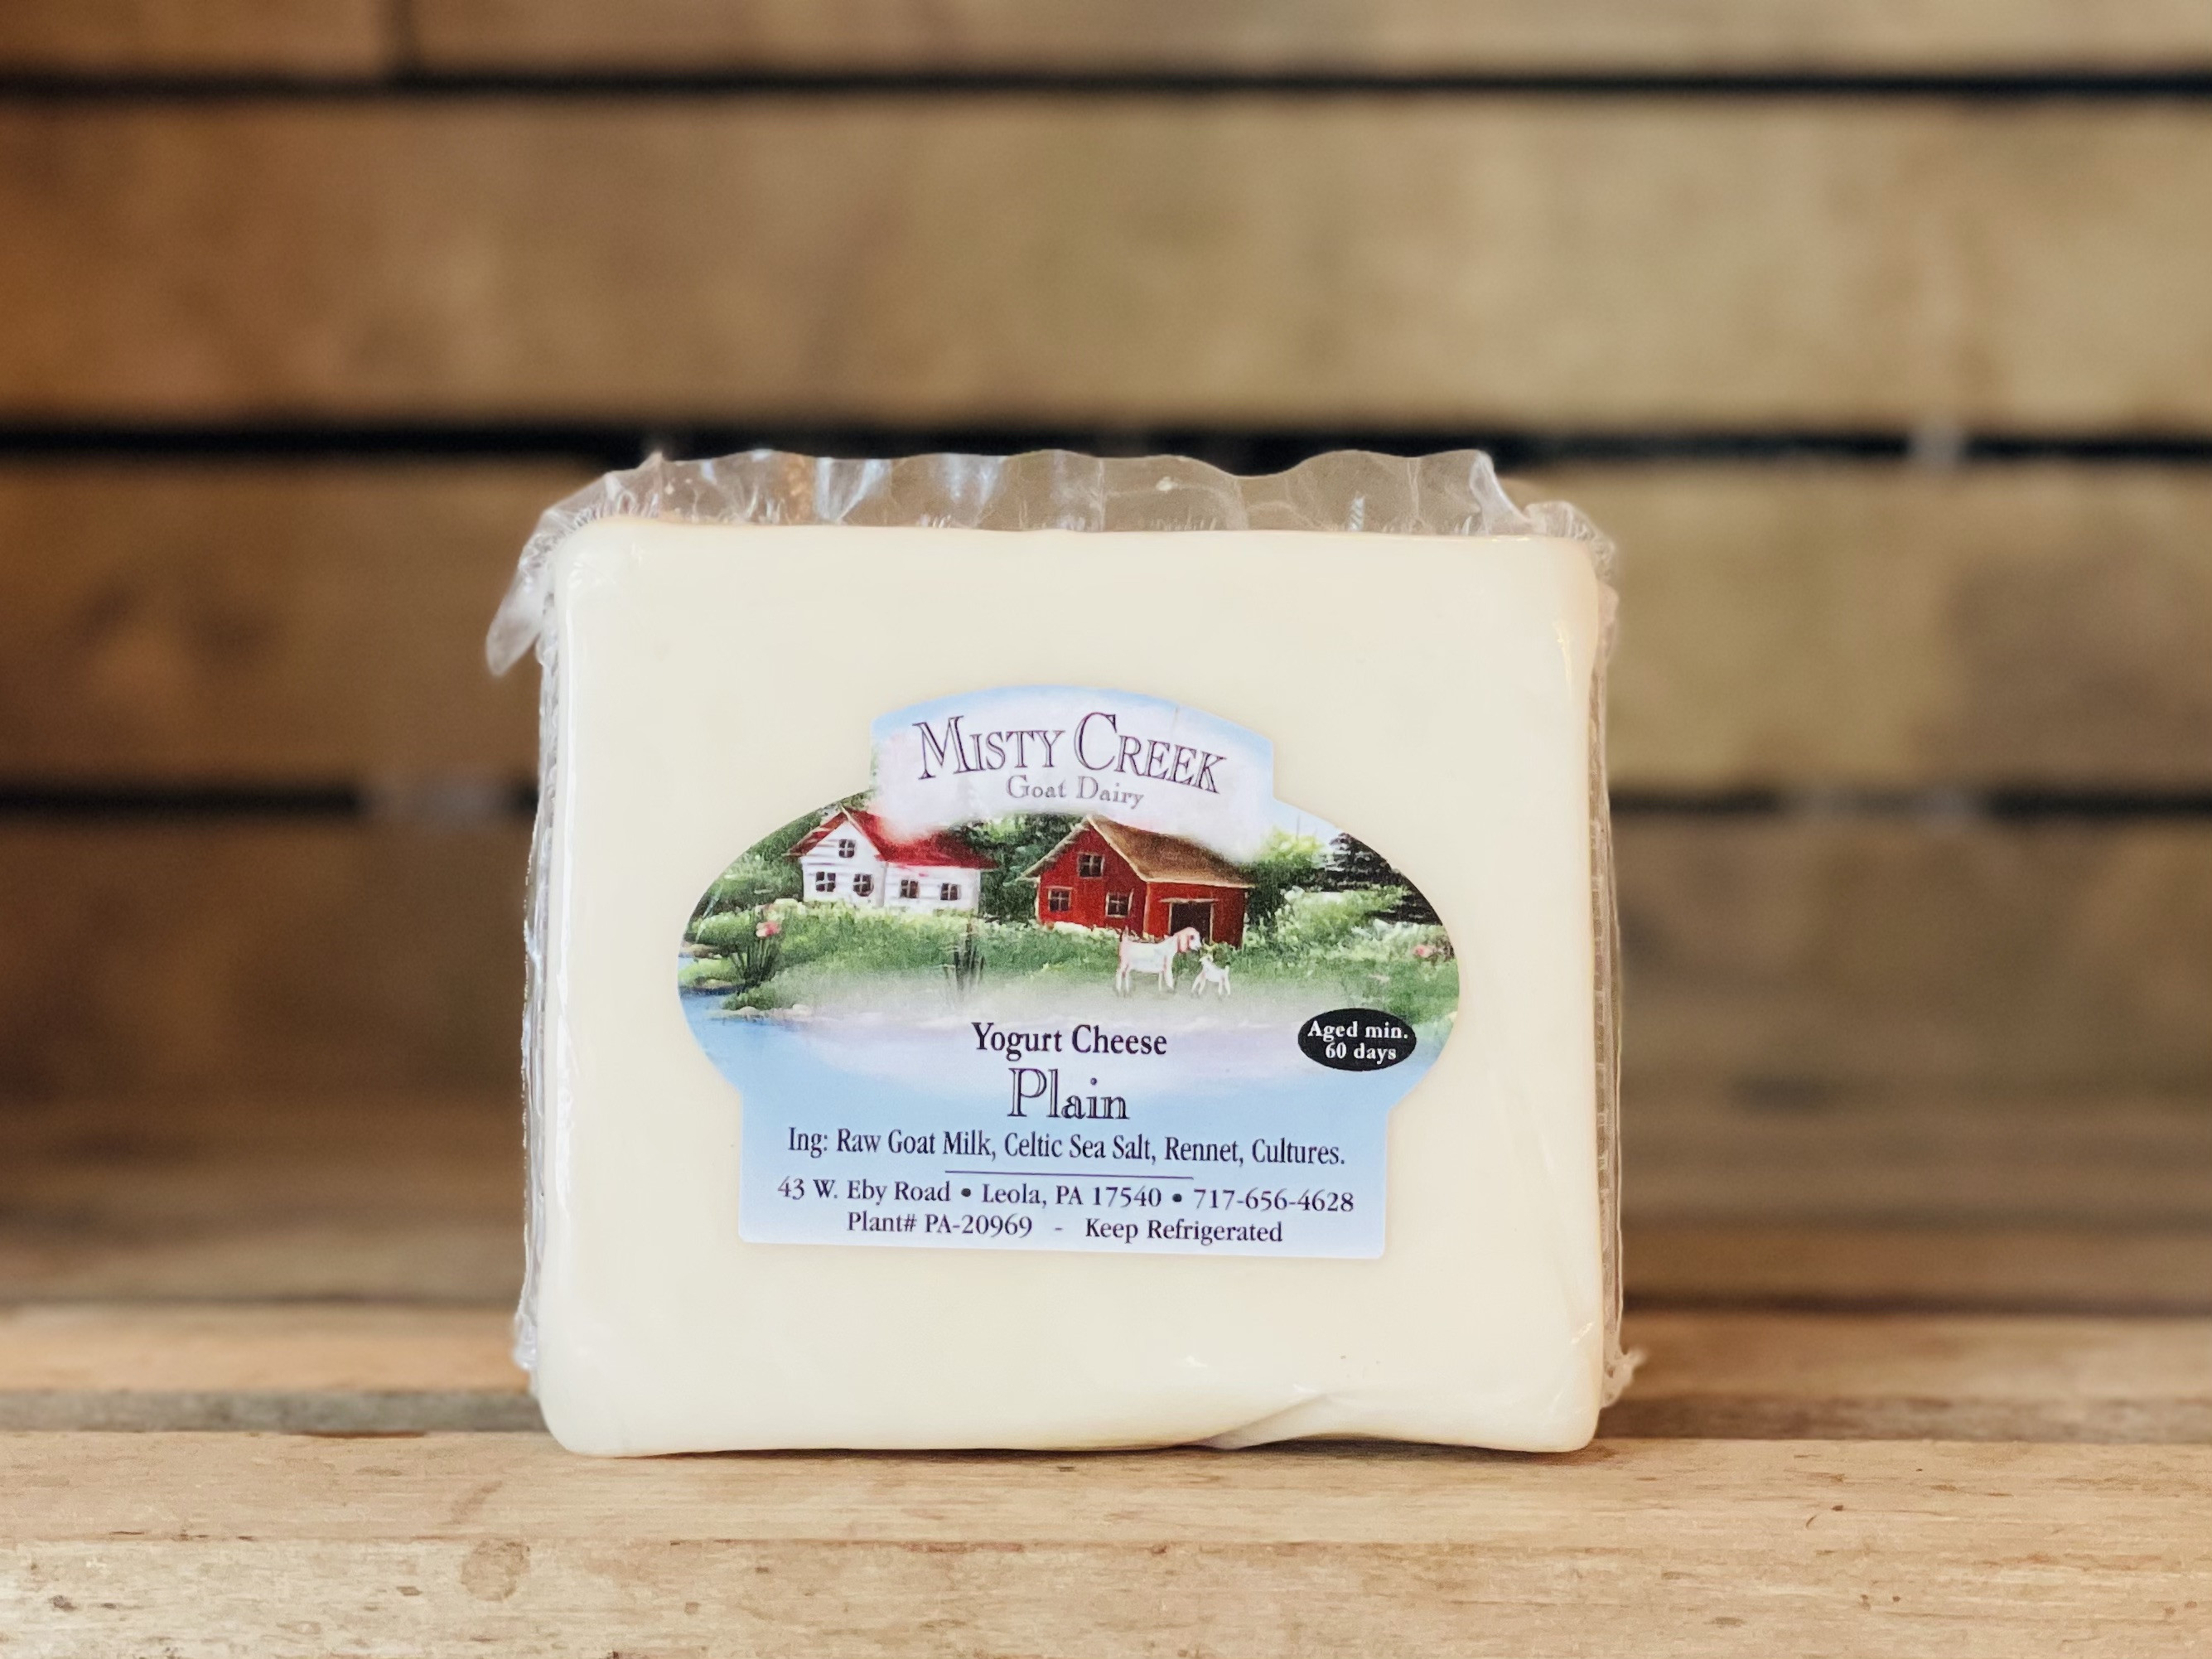 8oz Goat Plain Yogurt Cheese